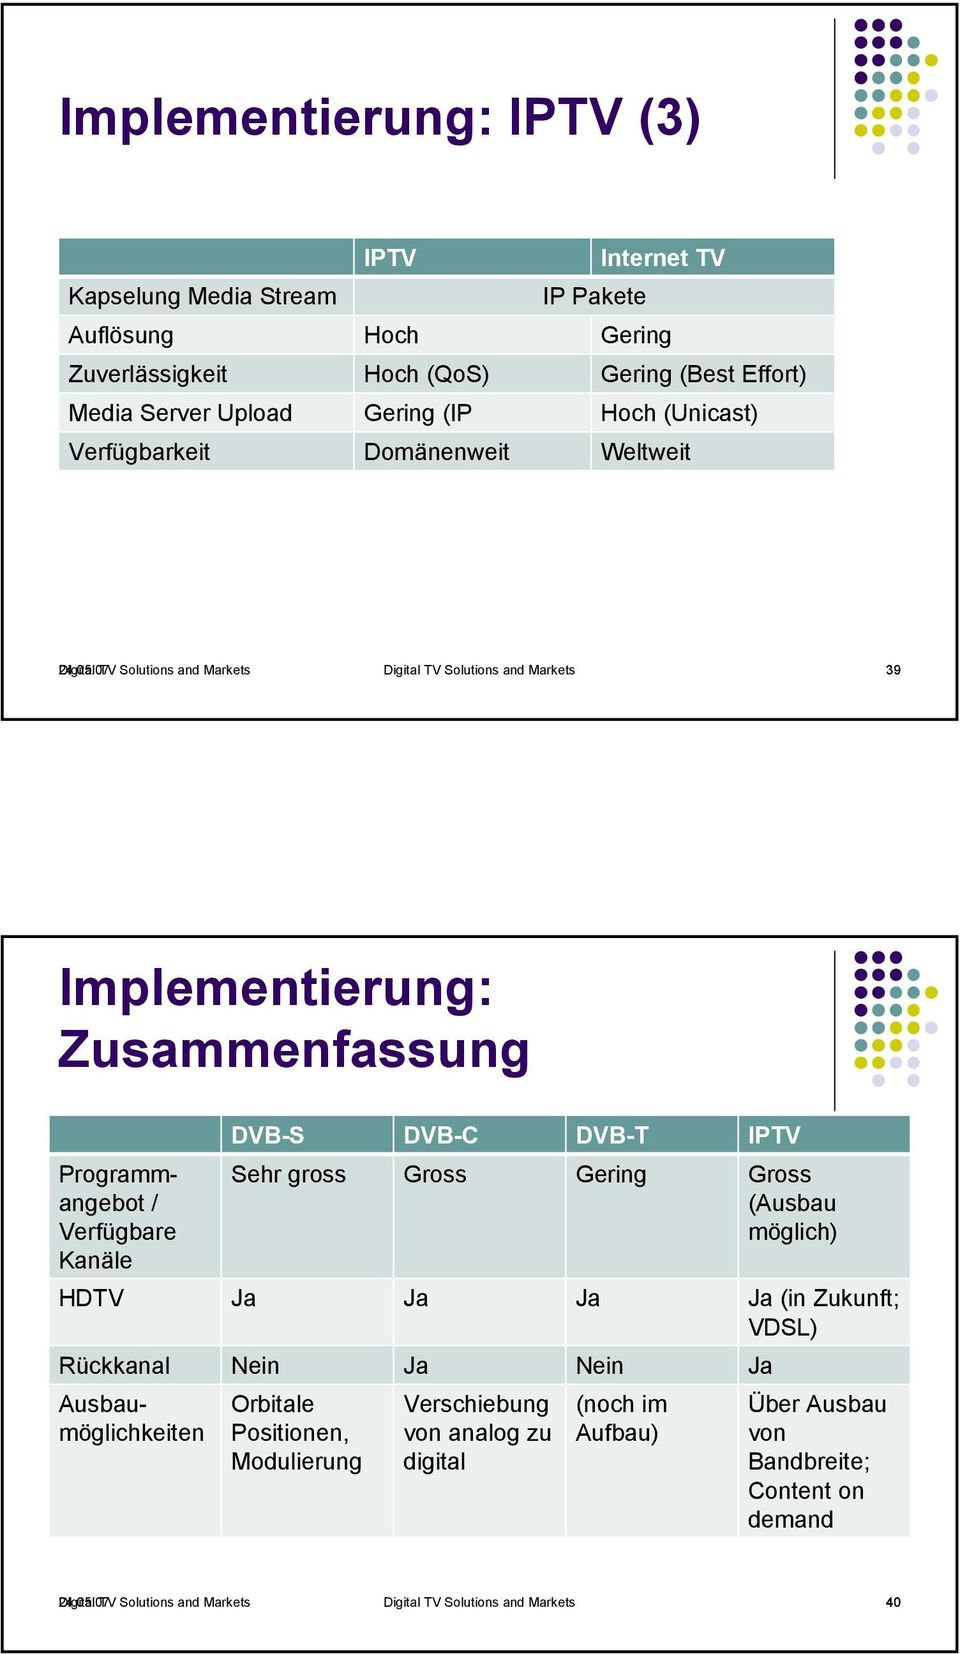 07 Digital TV Solutions and Markets Digital TV Solutions and Markets 39 Implementierung: Zusammenfassung Programmangebot / Verfügbare Kanäle DVB-S DVB-C DVB-T IPTV Sehr gross Gross